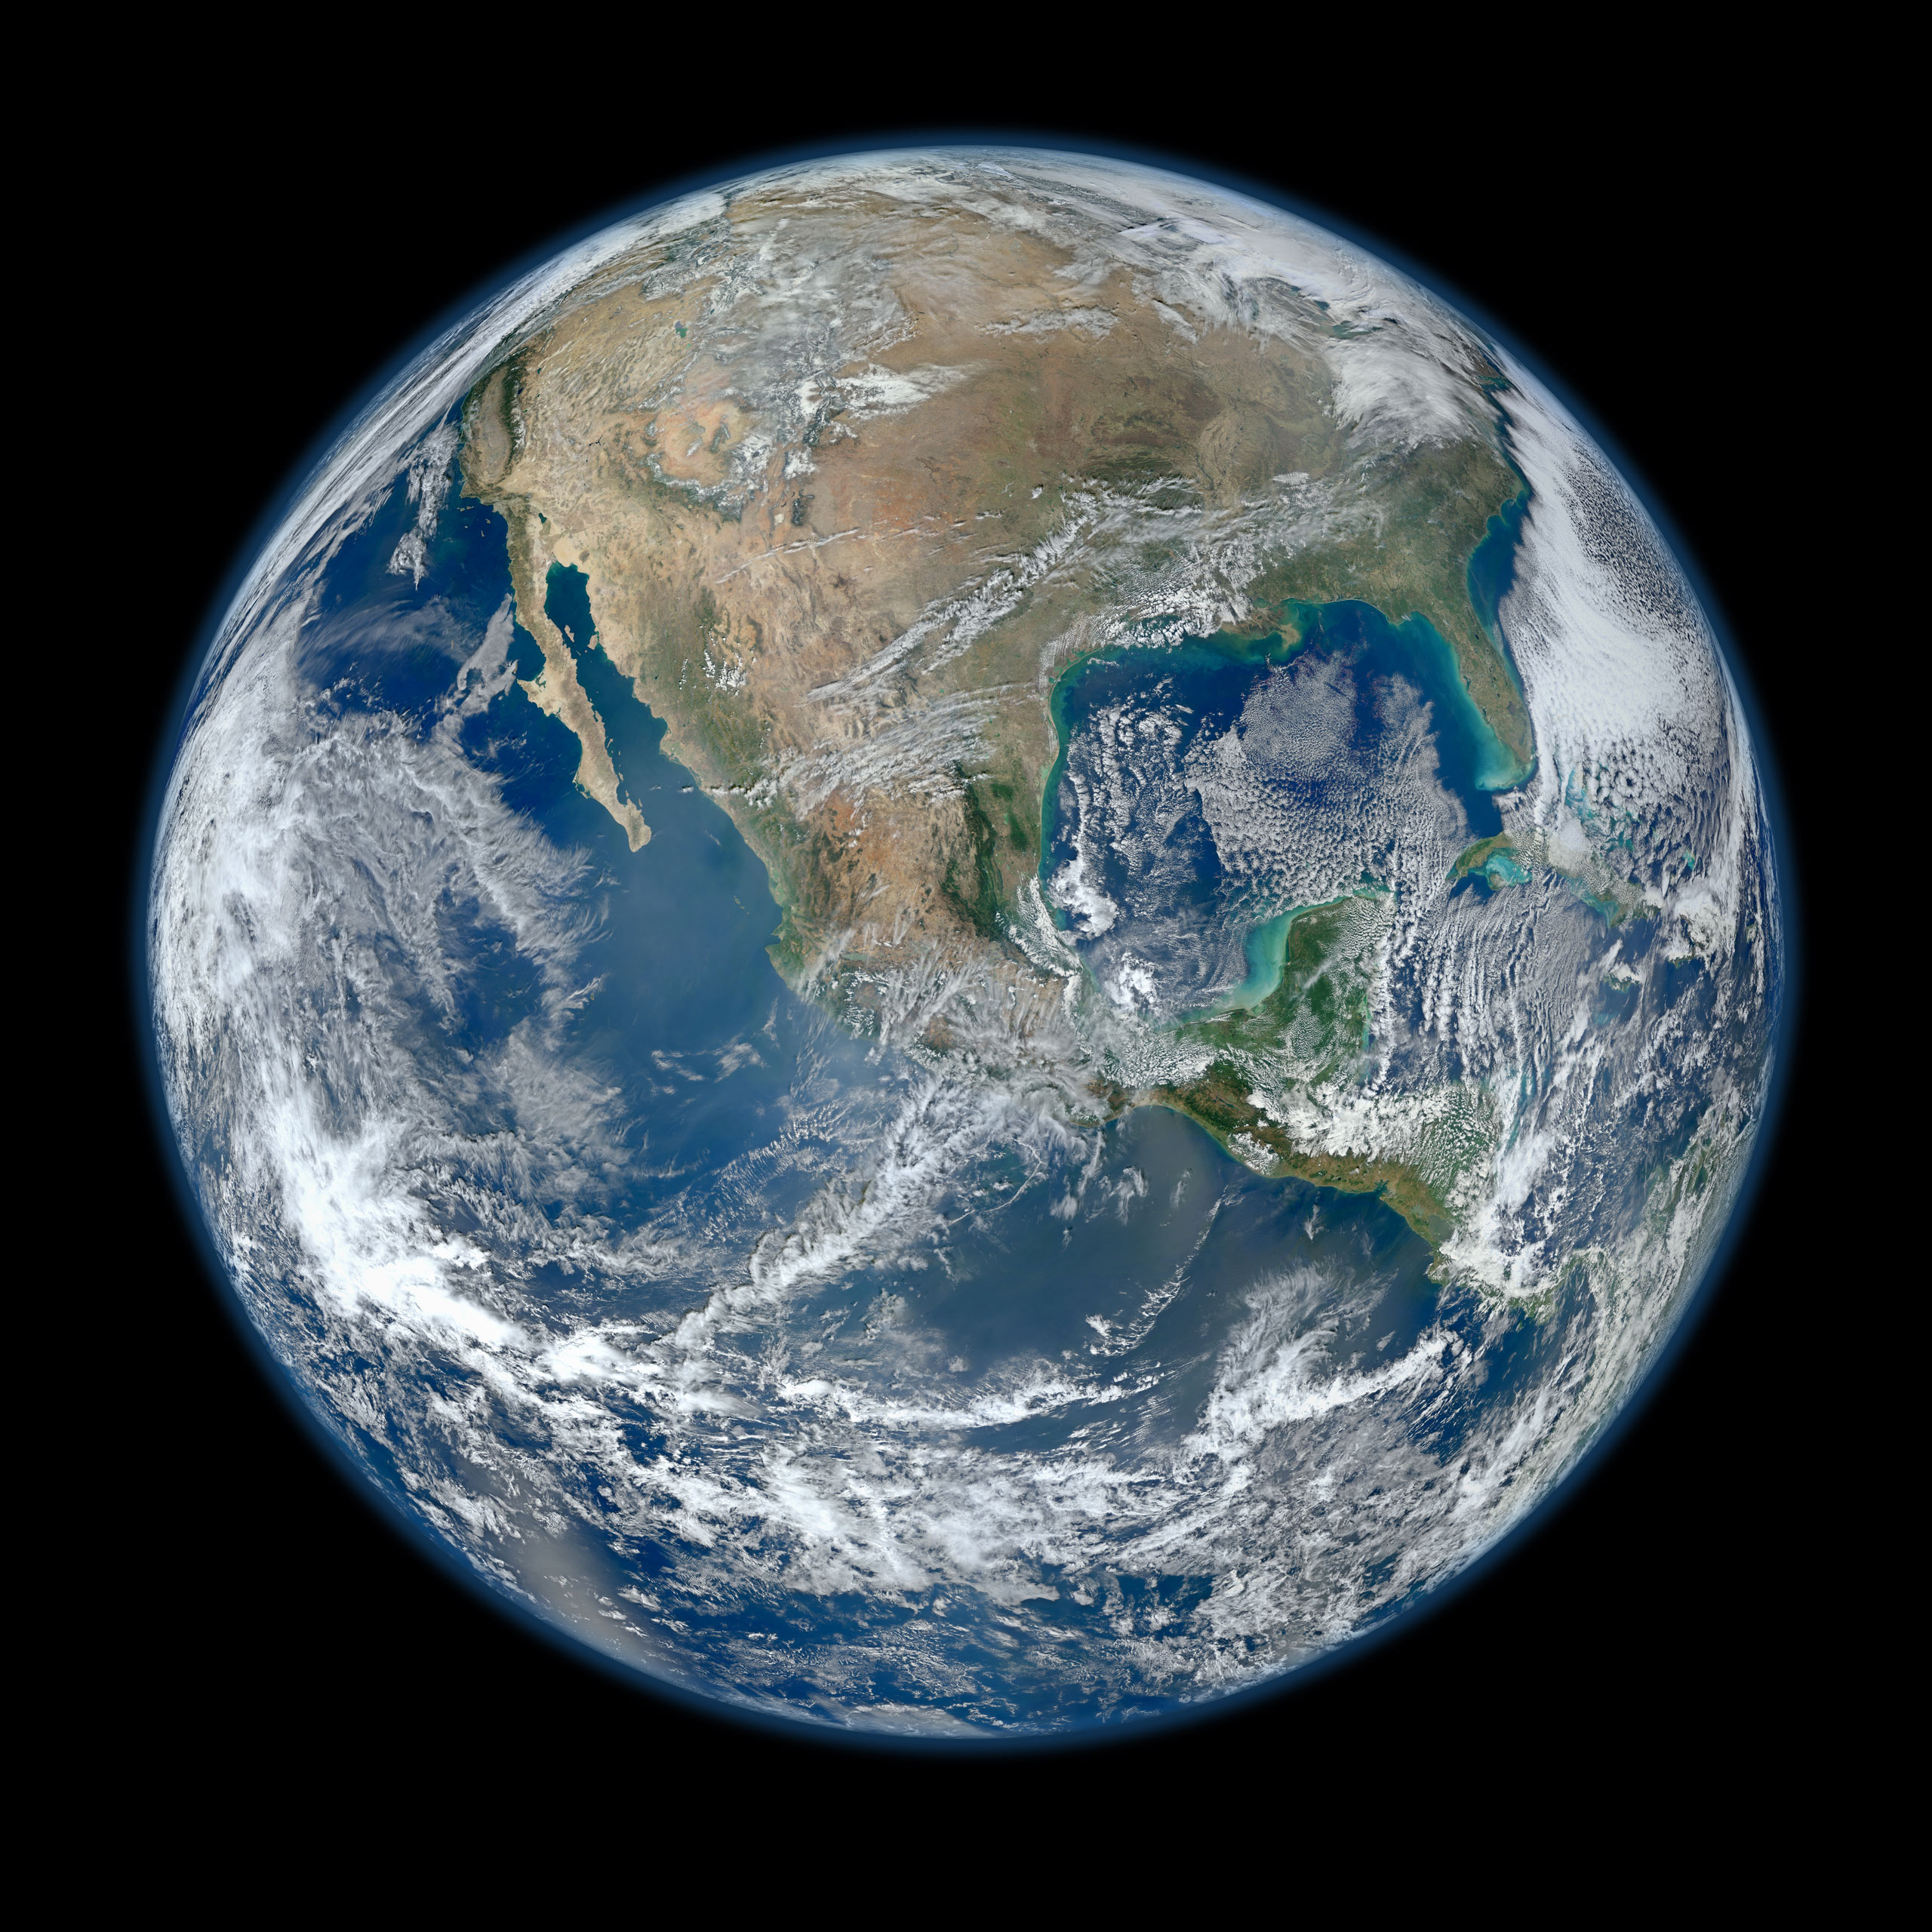 An image of the Earth taken from the VIIRS instrument aboard NASA's Earth-observing research satellite, Suomi NPP. This composite image uses a number of swaths of the Earth's surface taken on 4 Jan. 4, 2012.